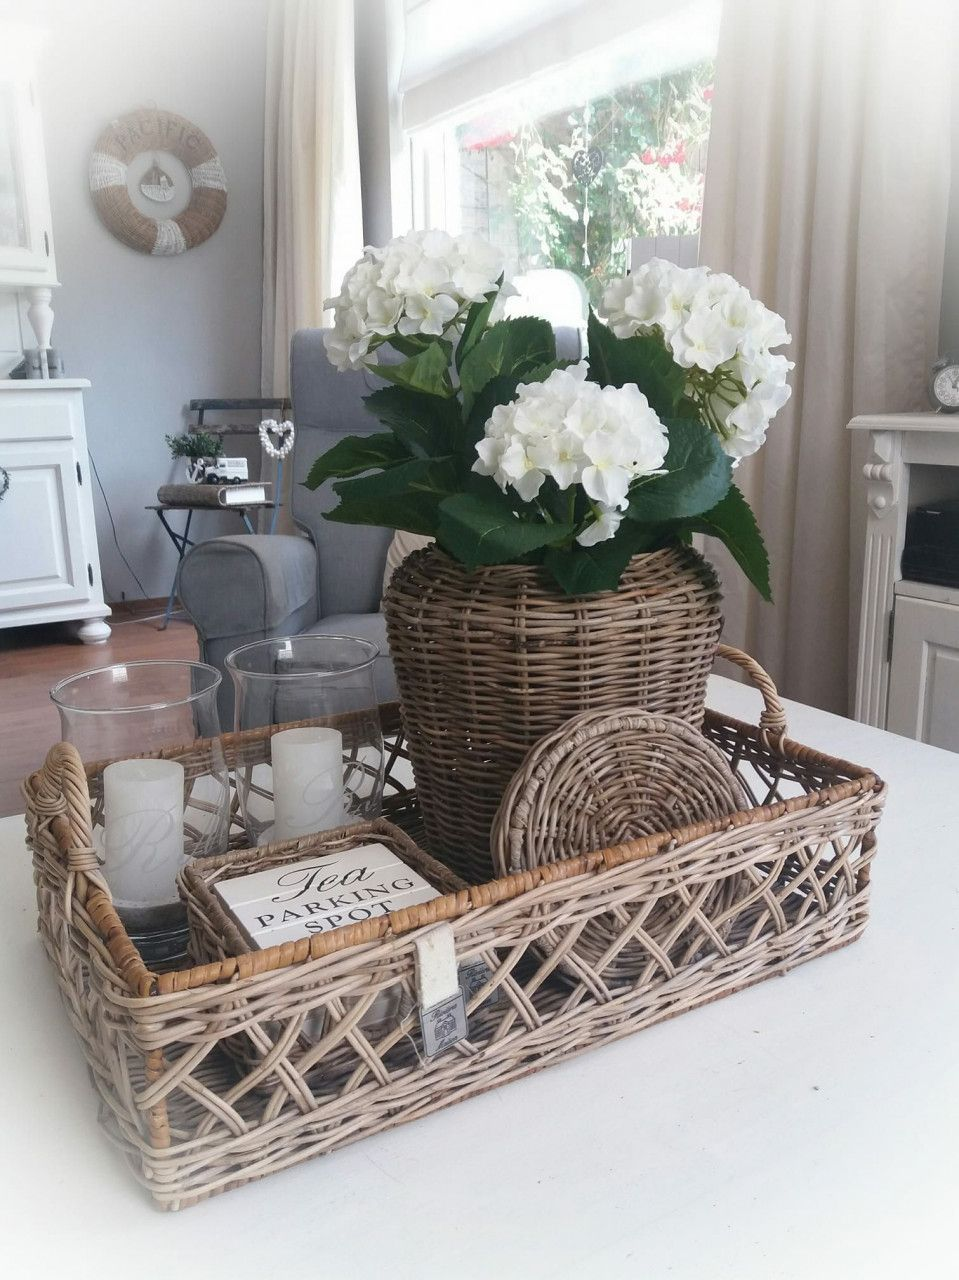 Inspire Me Home Decor Image By Tippa In 2020 Coffee Table Decor